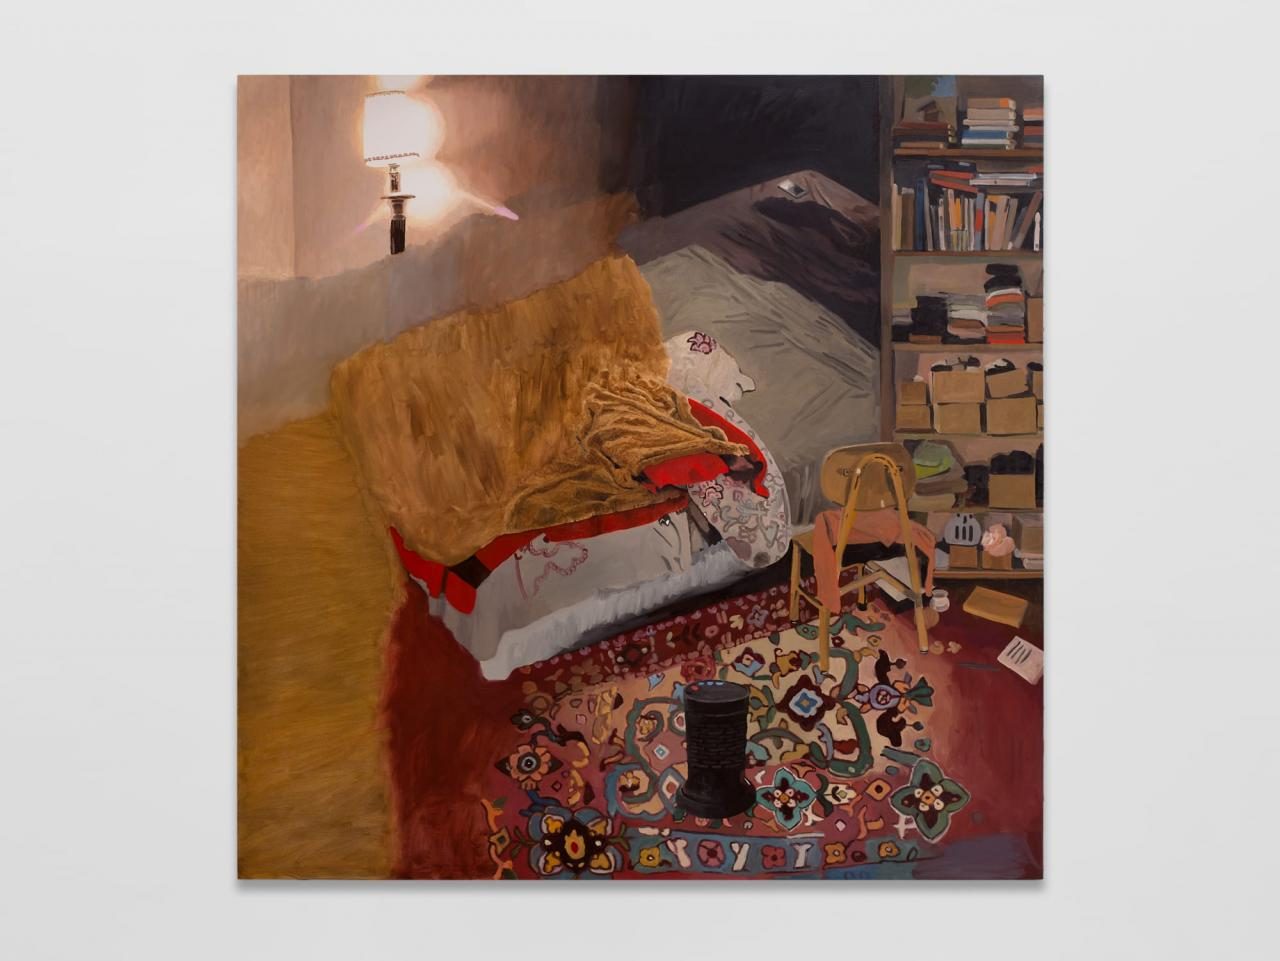 Bed ,2021, Oil on canvas, 177x 177cm